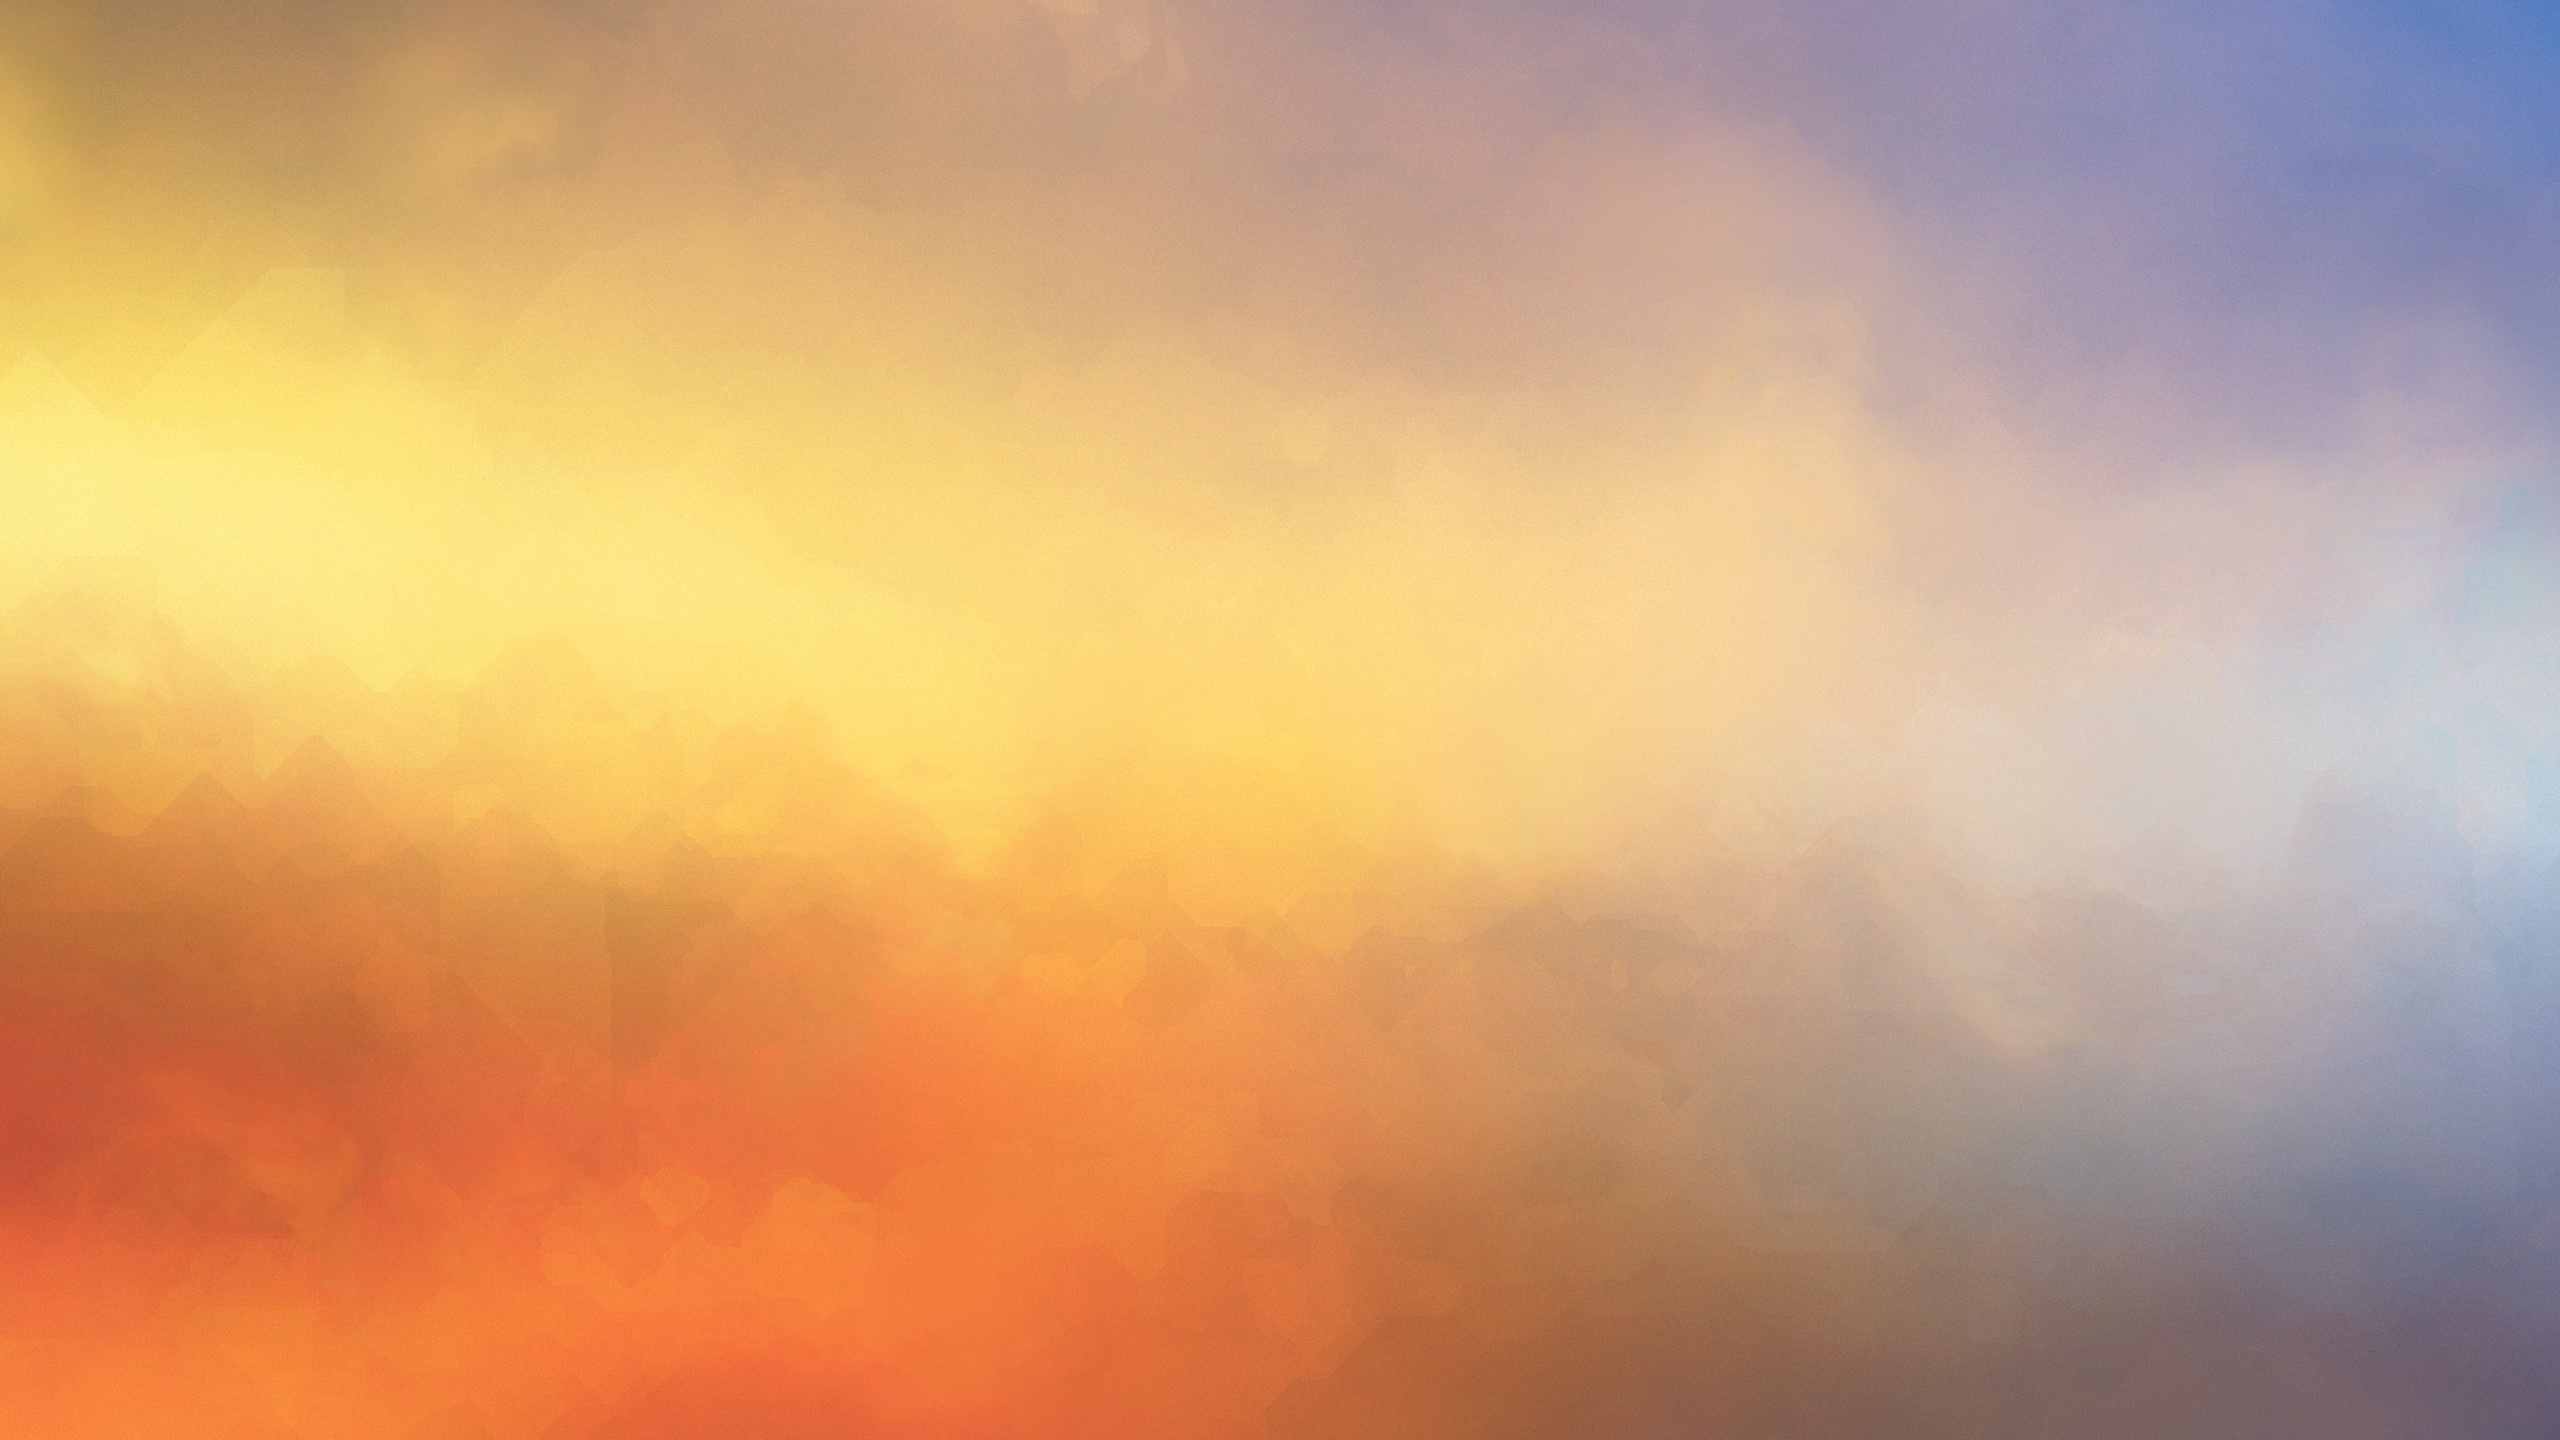 blurred colors wallpapers 35088 2560x1440